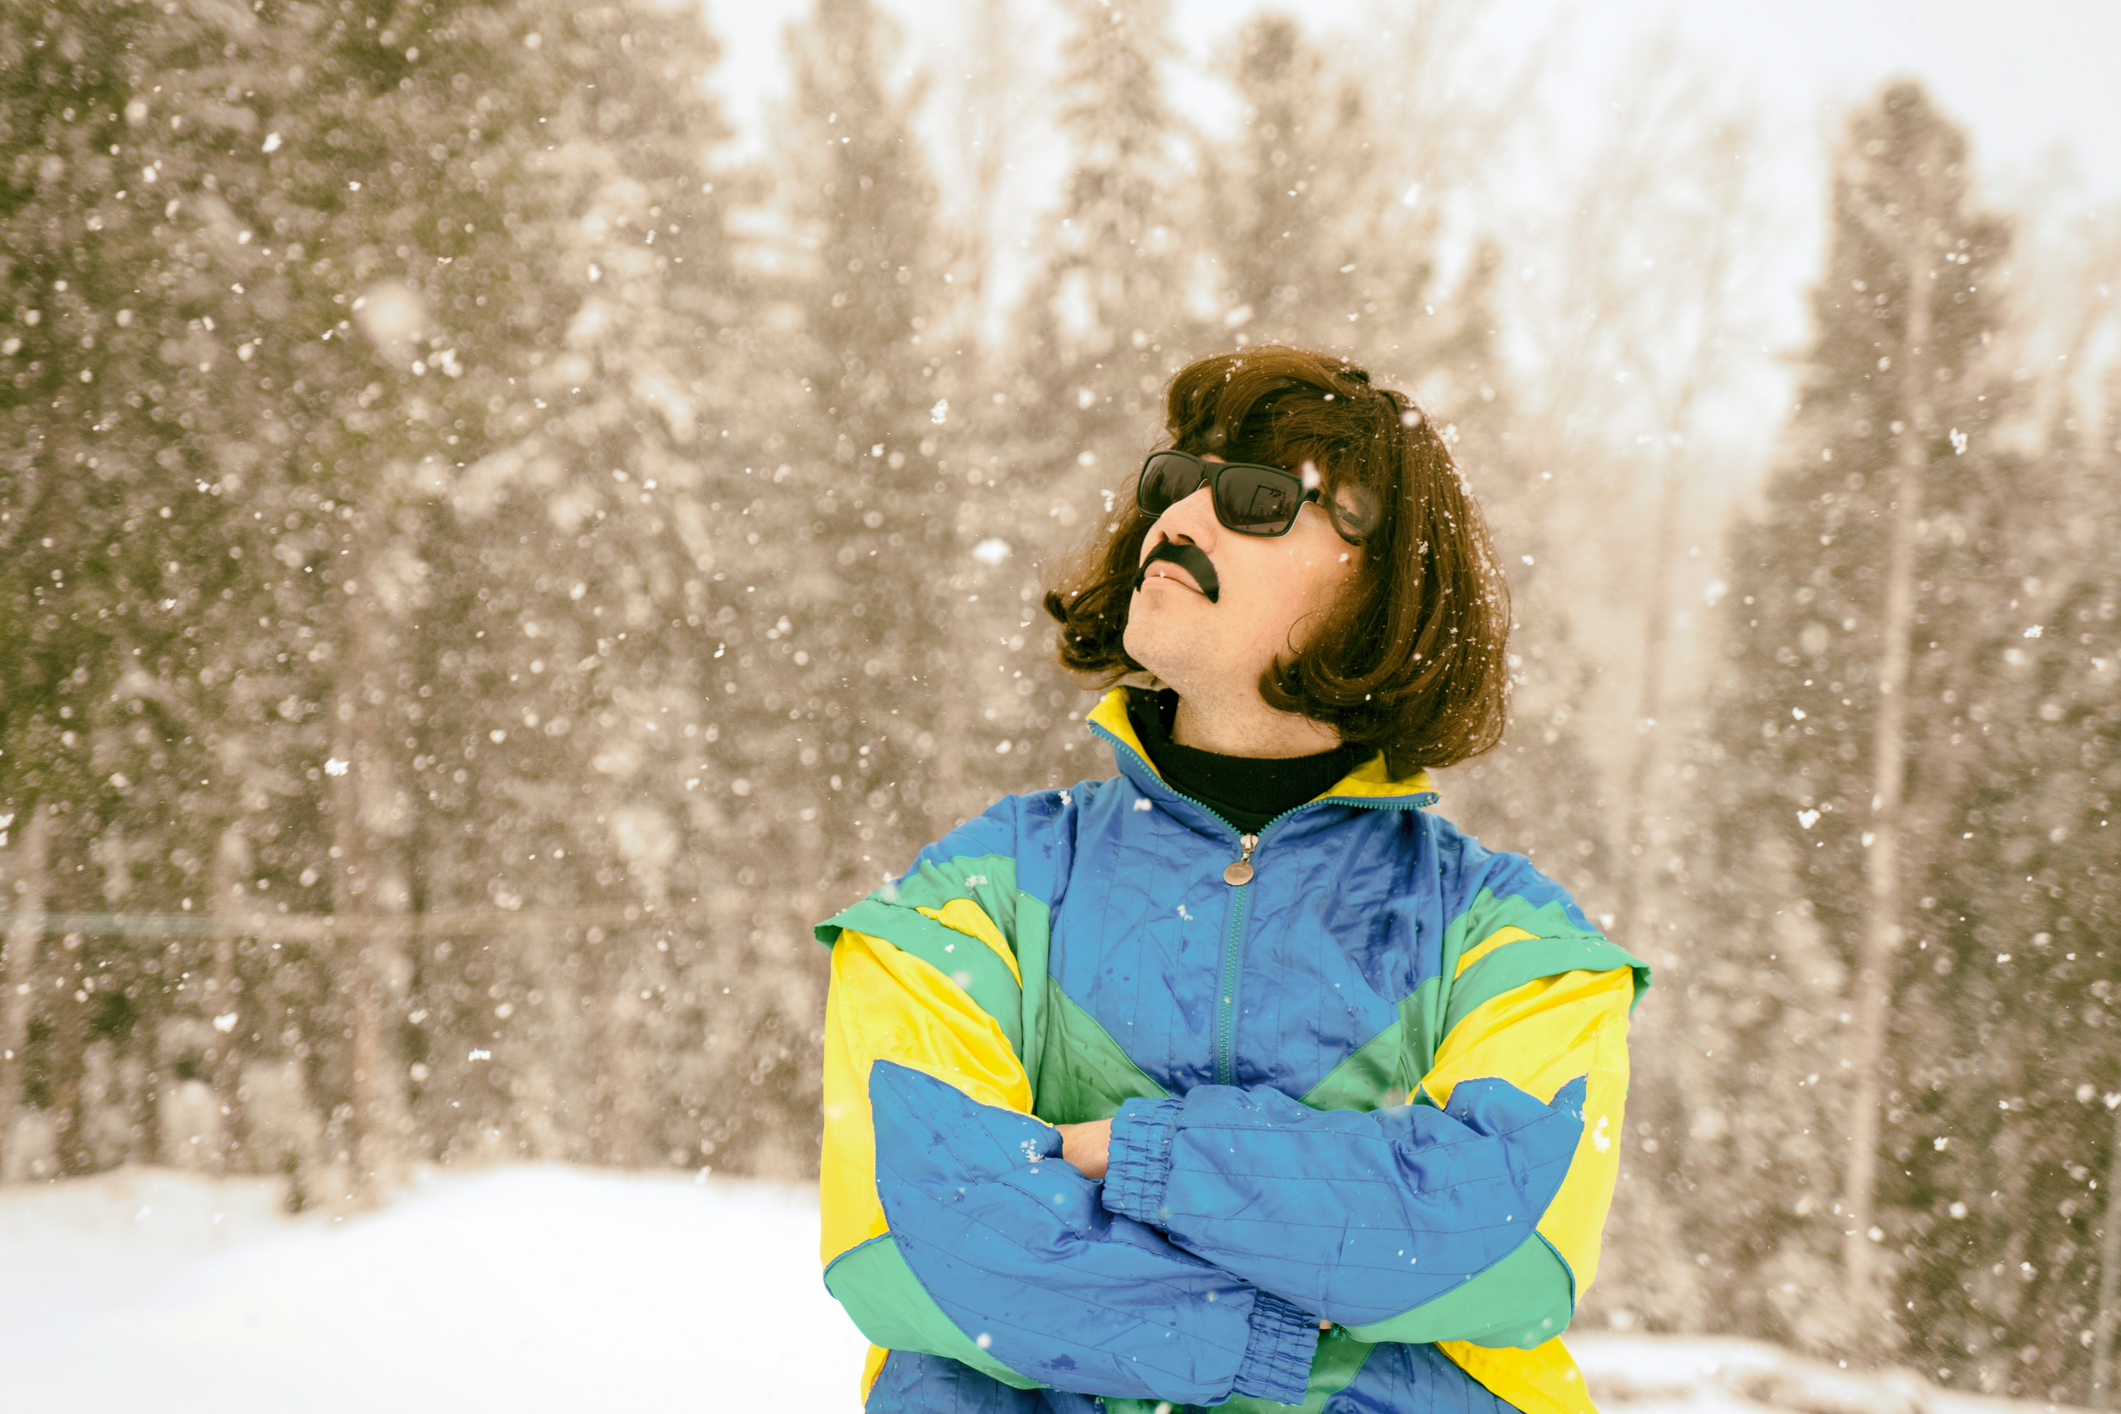 Vintage photo of young man snowboarder in the mountains. Retro style. 1980 concept.